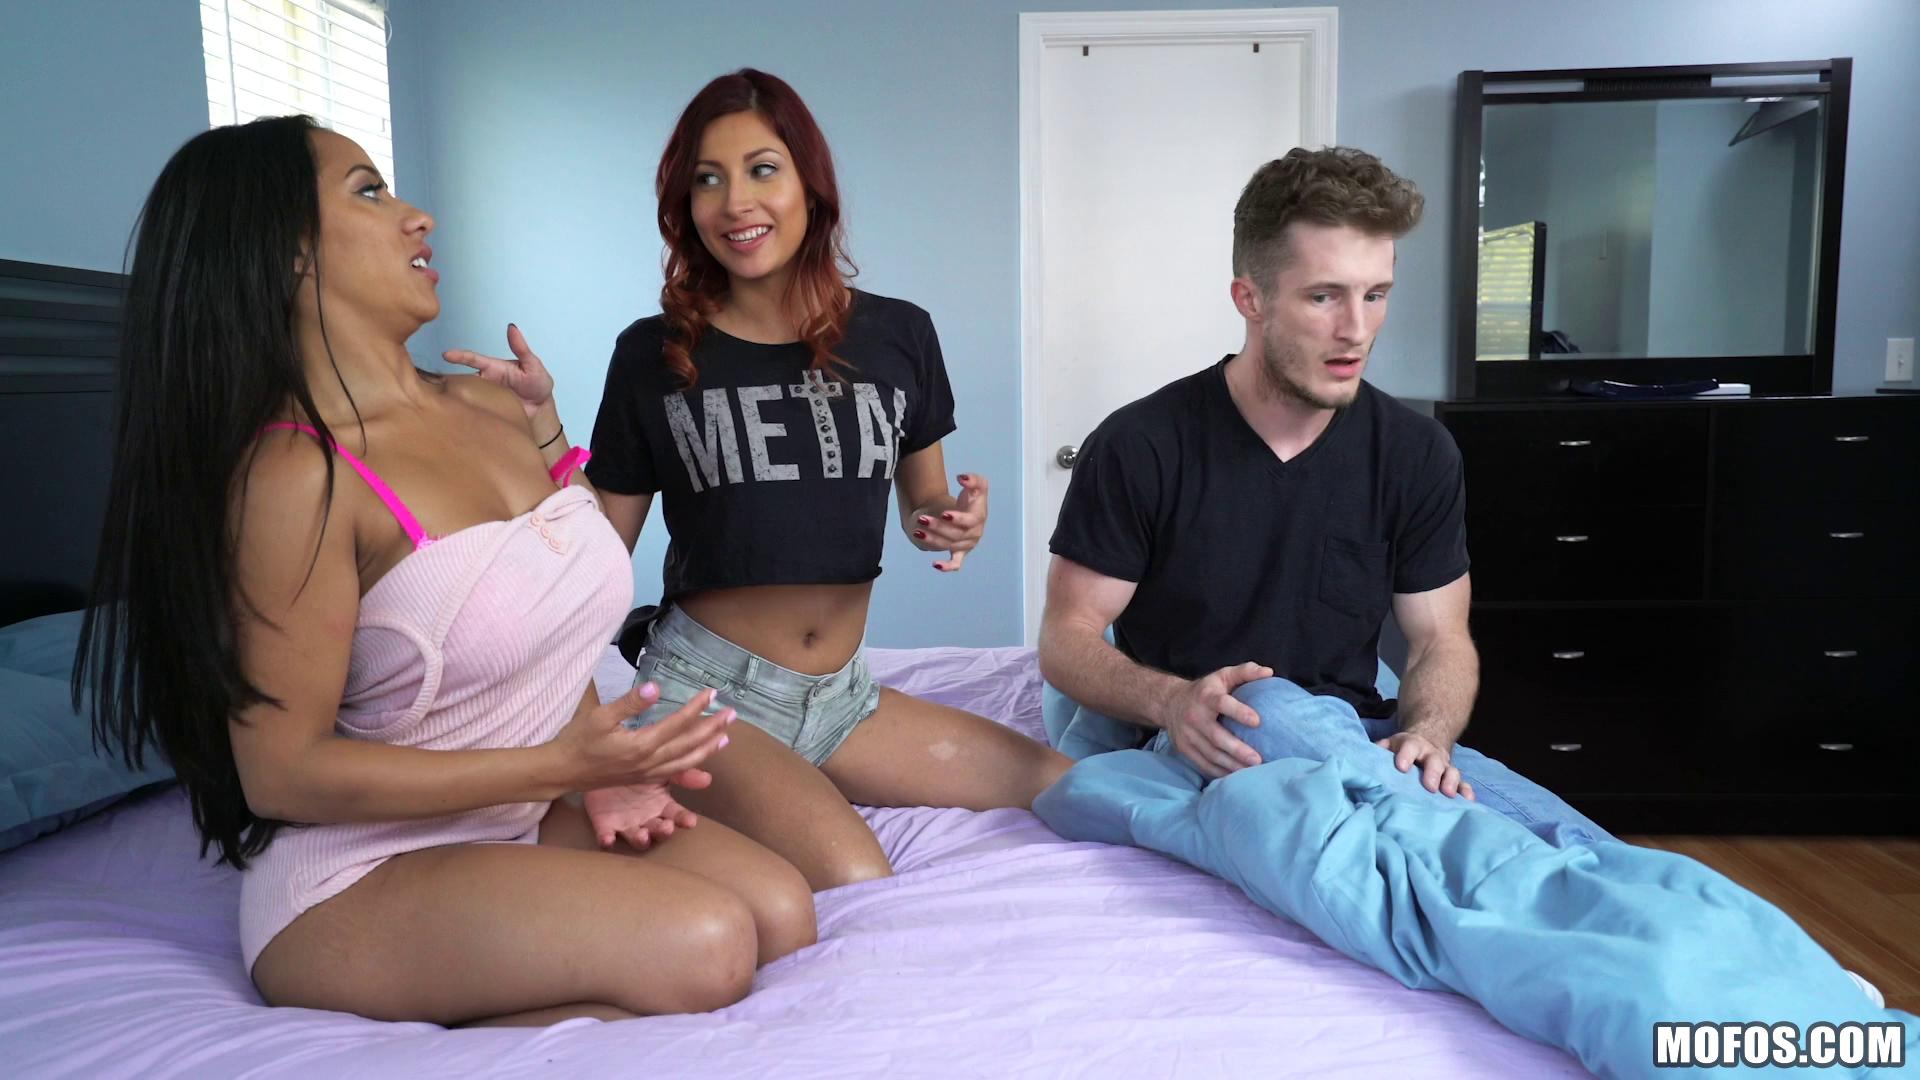 ShareMyBF – Jade Jantzen And Priya Price Bootilicious BFFs Have Threesome